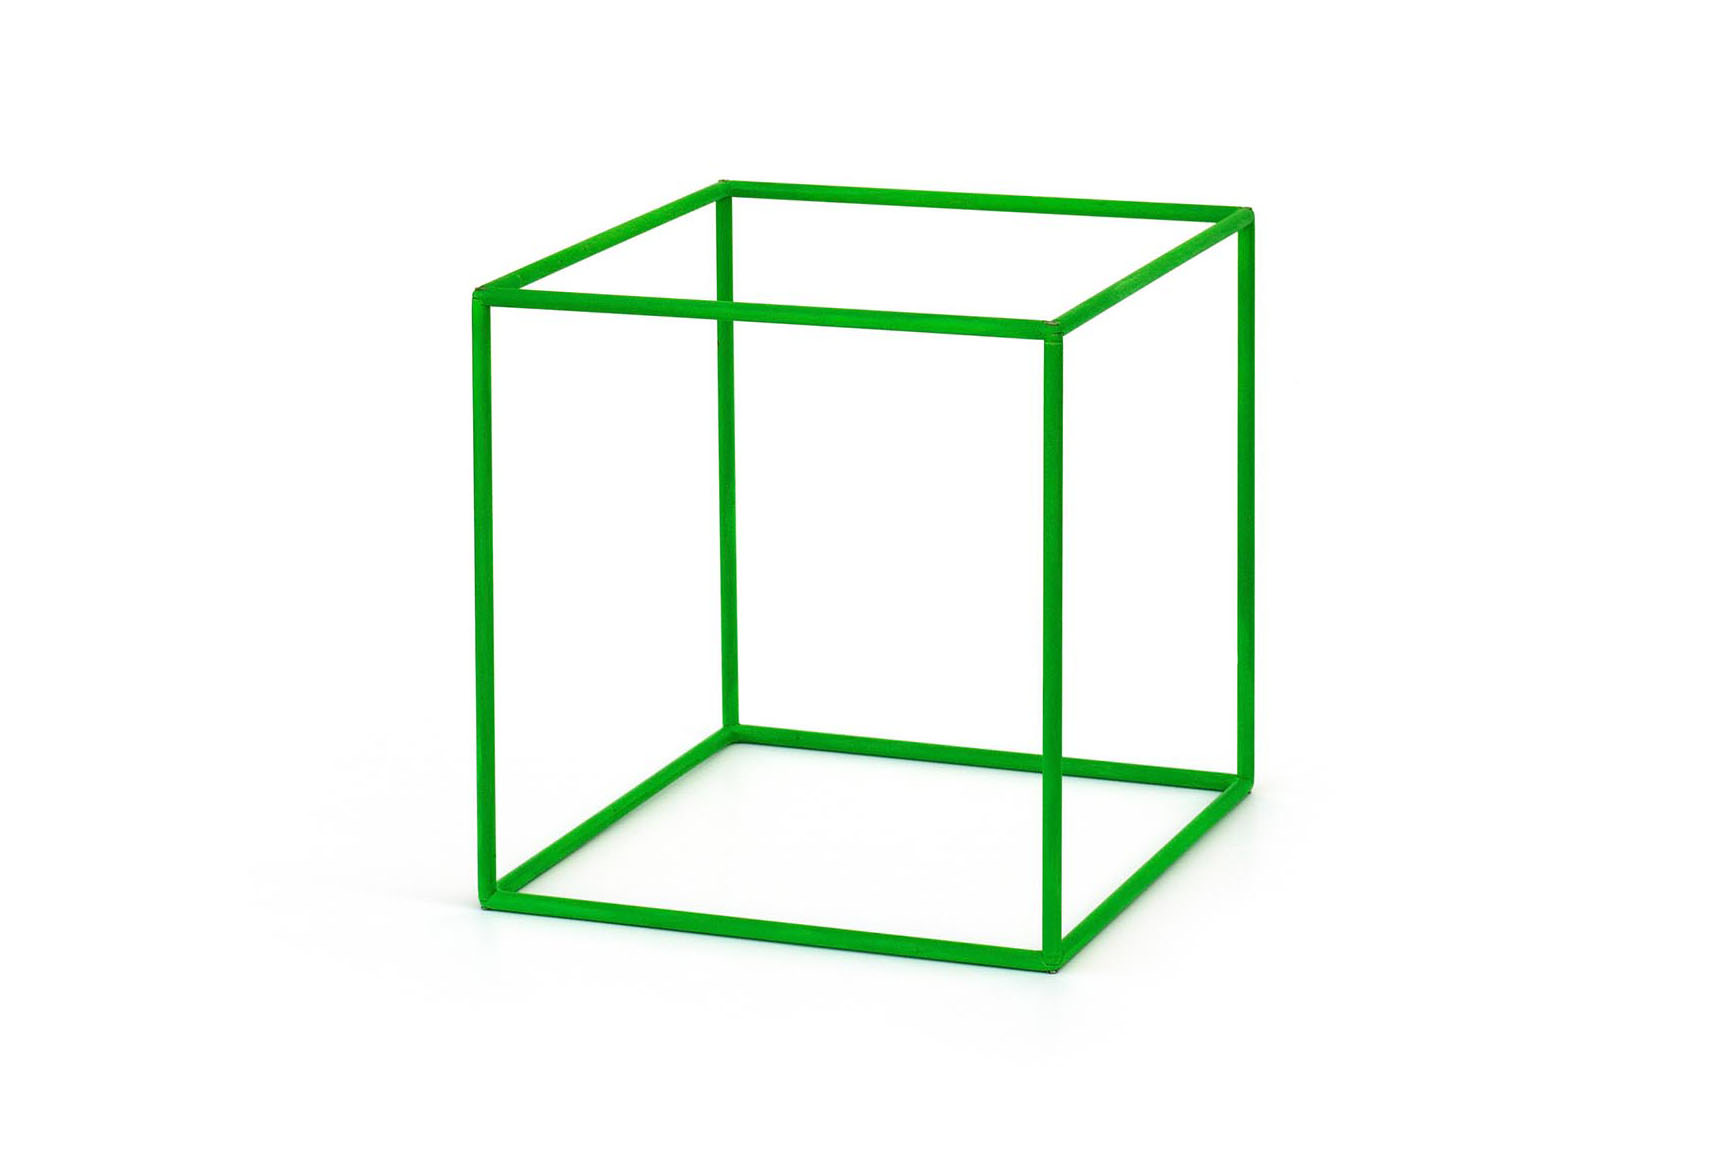 Green Cube Add Canvas